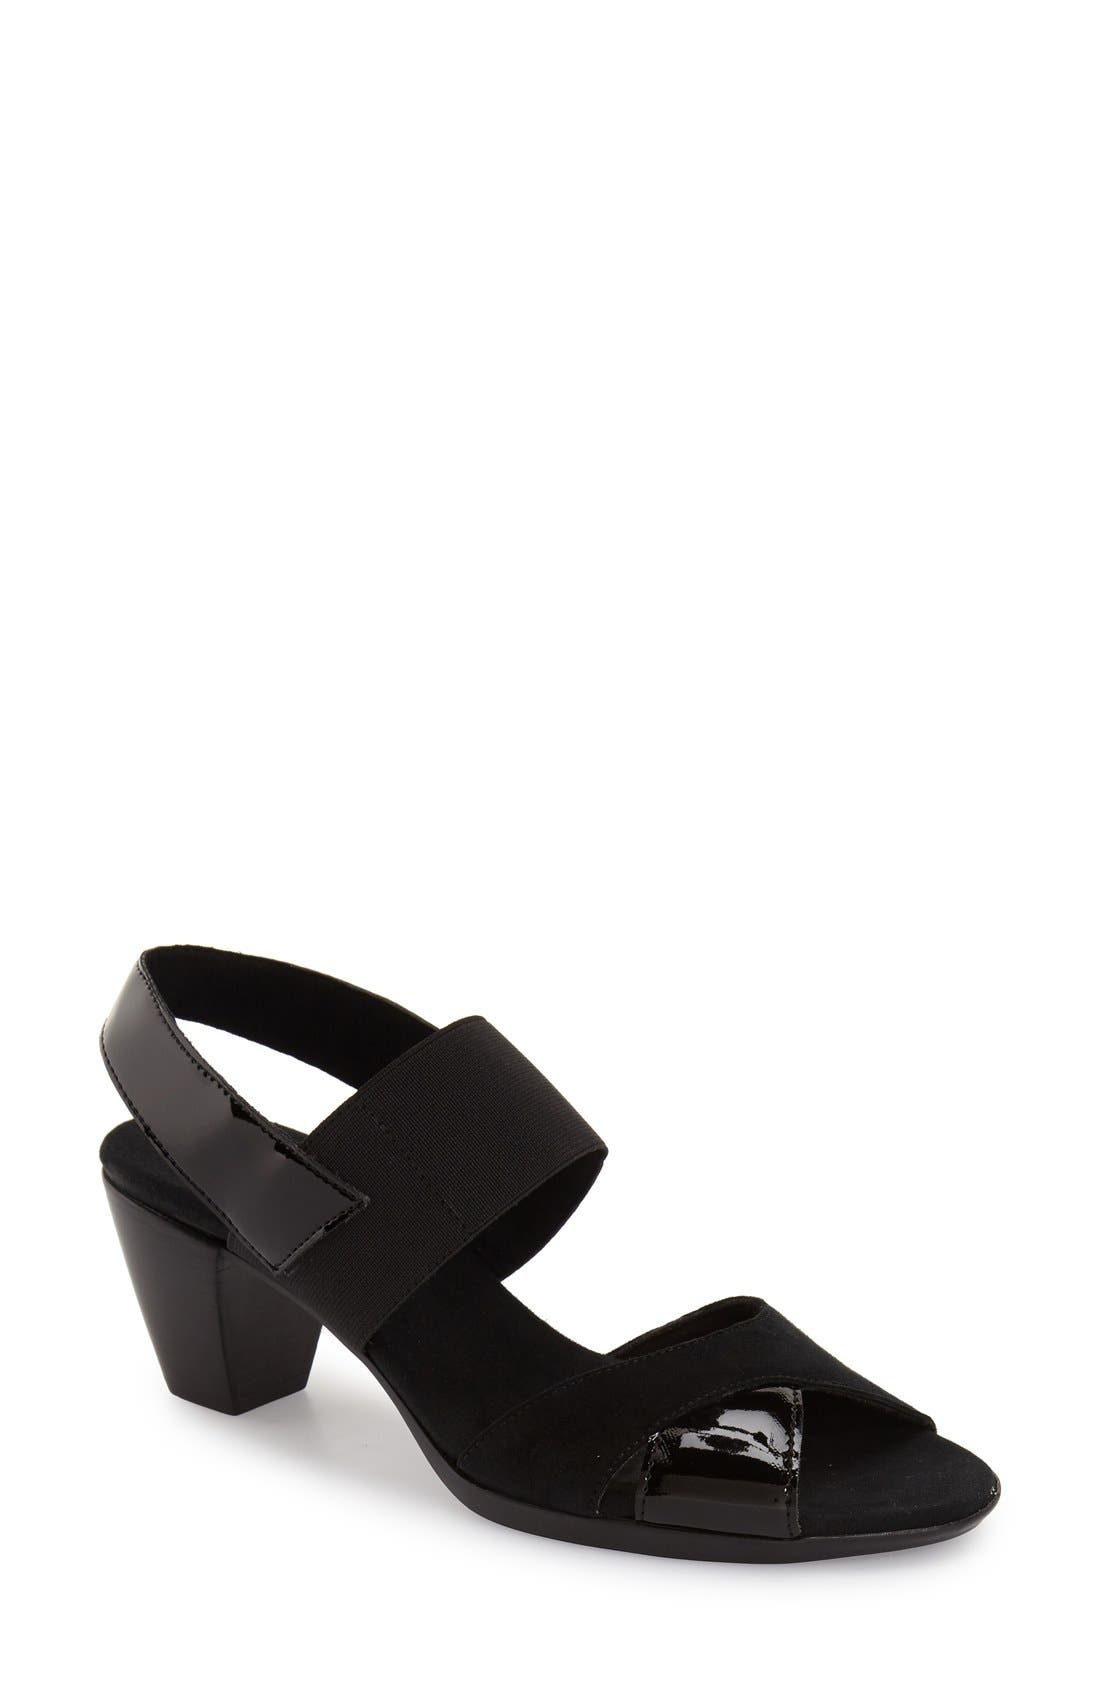 MUNRO,                             Darling Mixed Finish Slingback Sandal,                             Main thumbnail 1, color,                             BLACK COMBO